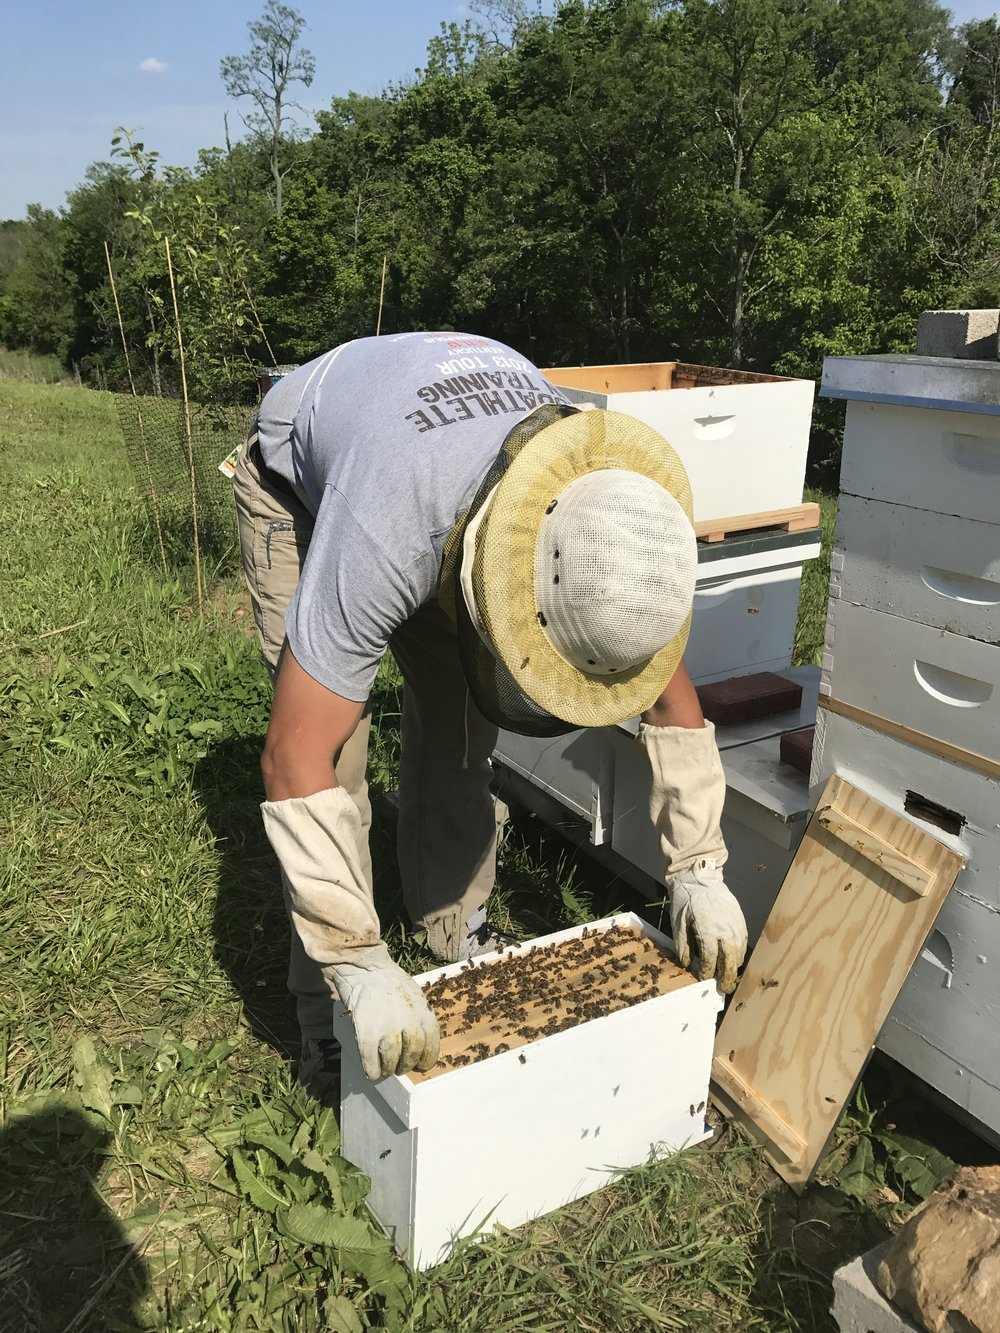 Here, Cory is transferring the swarm to a larger box since their numbers were so high.